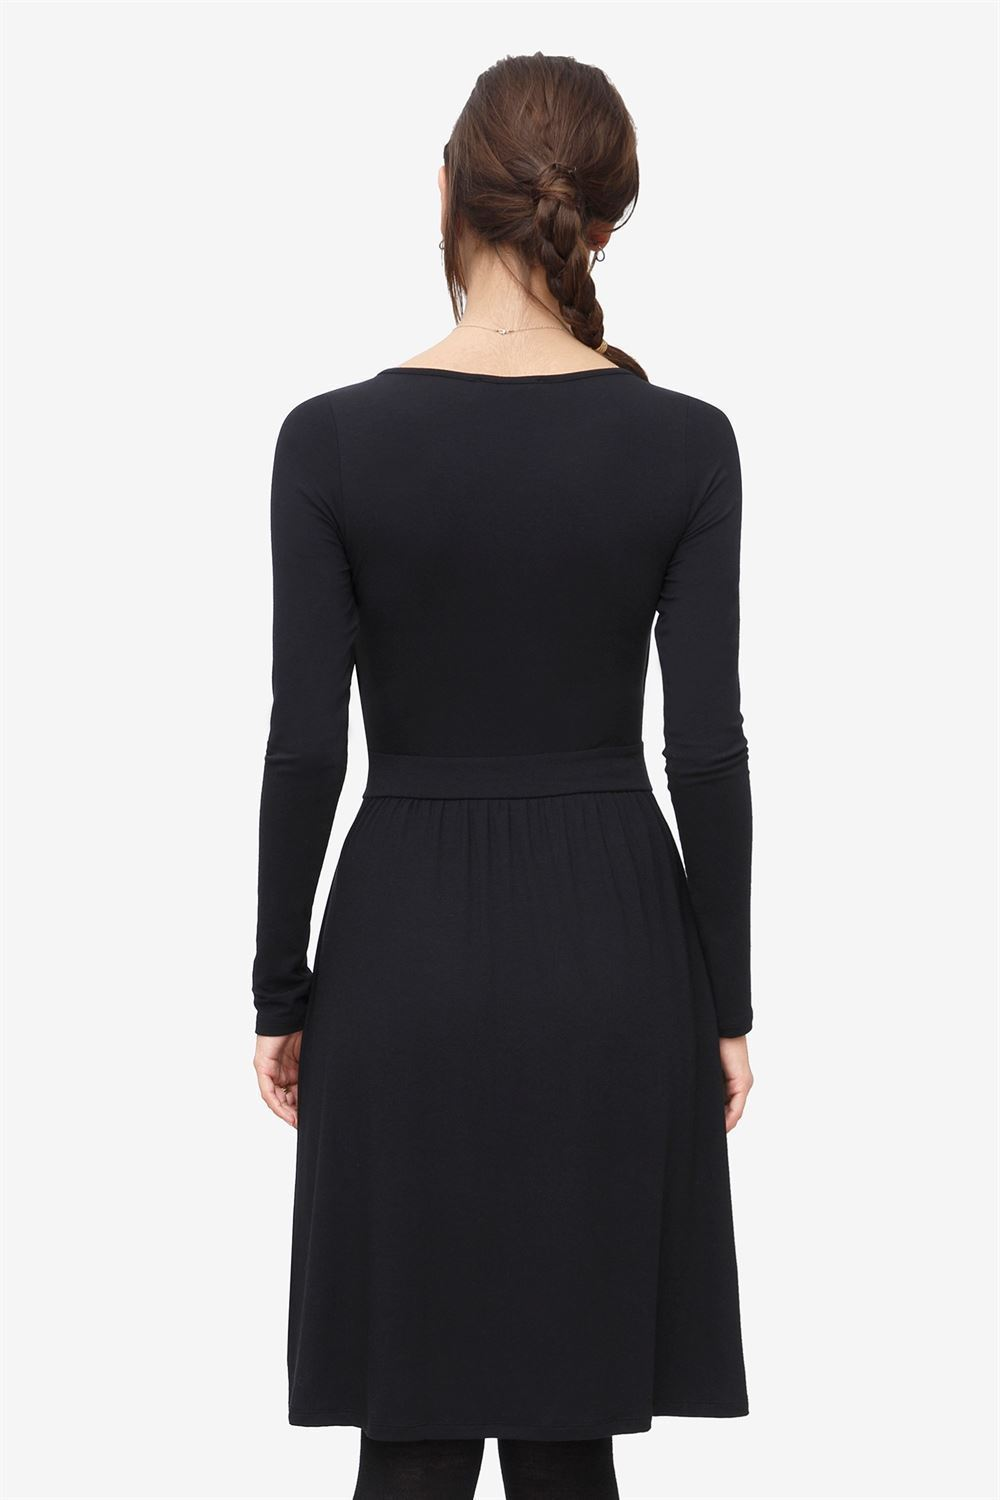 Black nursing dress with wrap look in soft bamboo fibres - Seen from behind